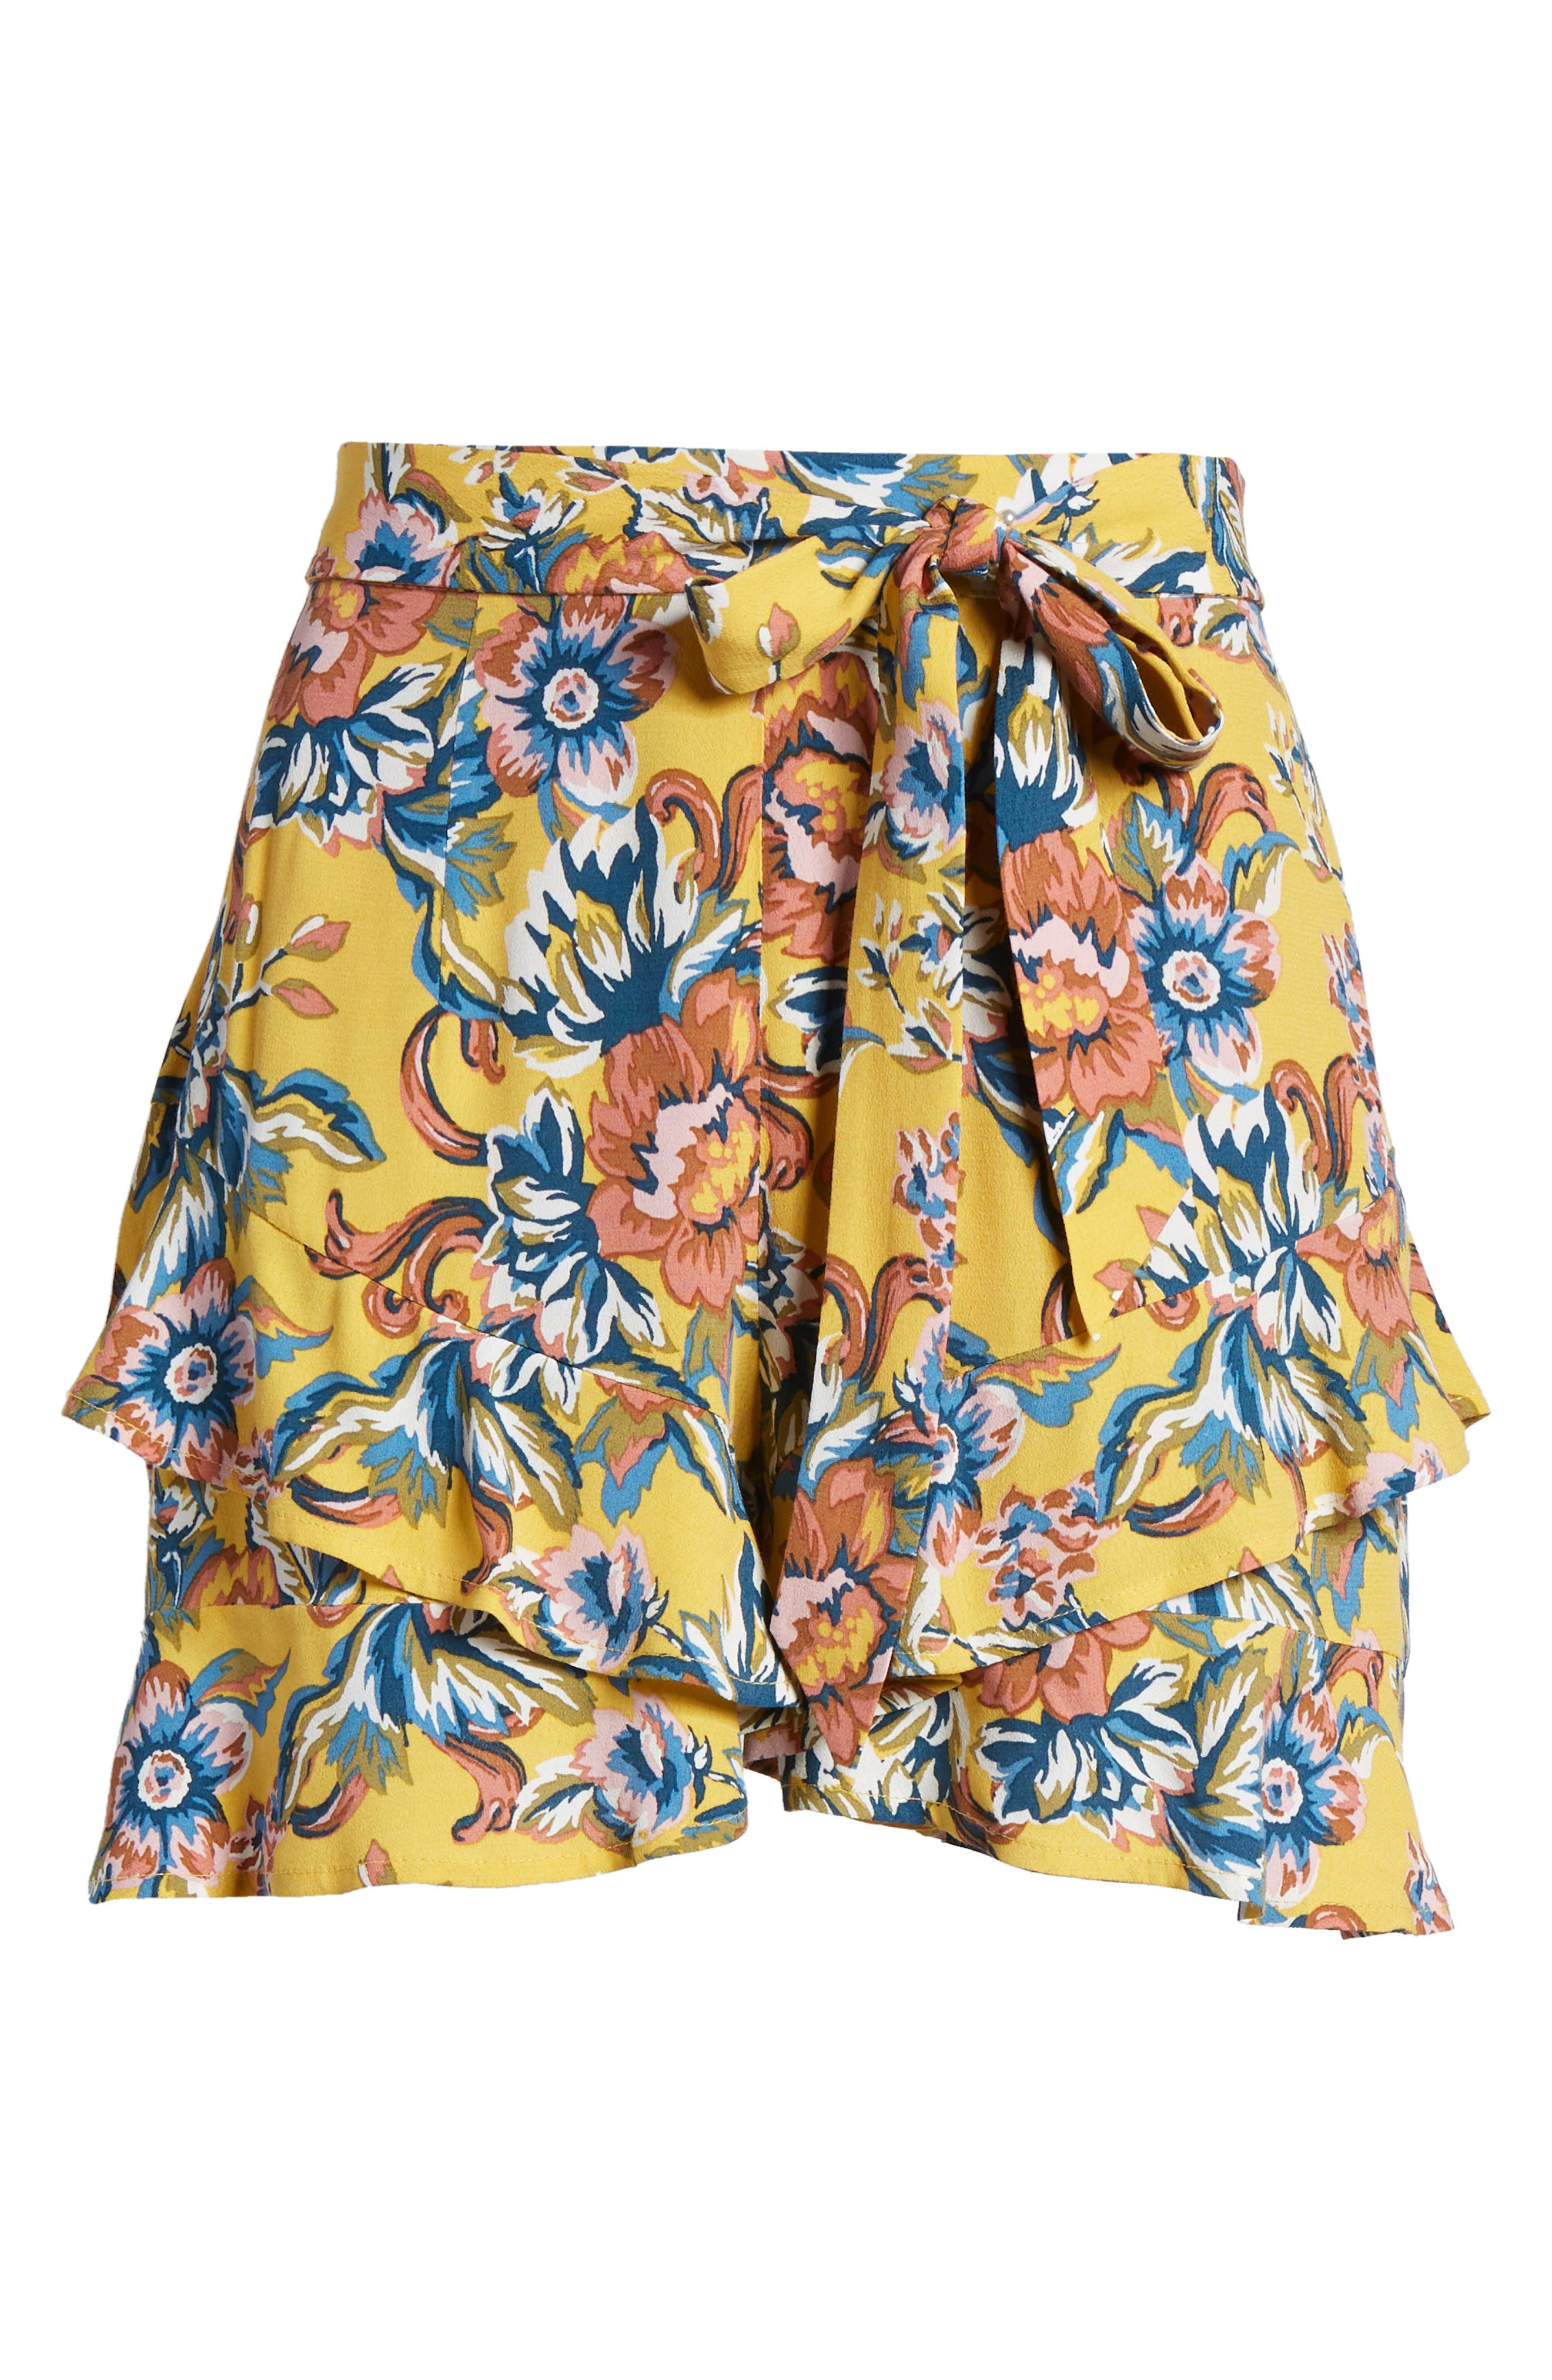 Print Ruffle Shorts,                             Alternate thumbnail 7, color,                             Yellow Ochre Tapestry Floral